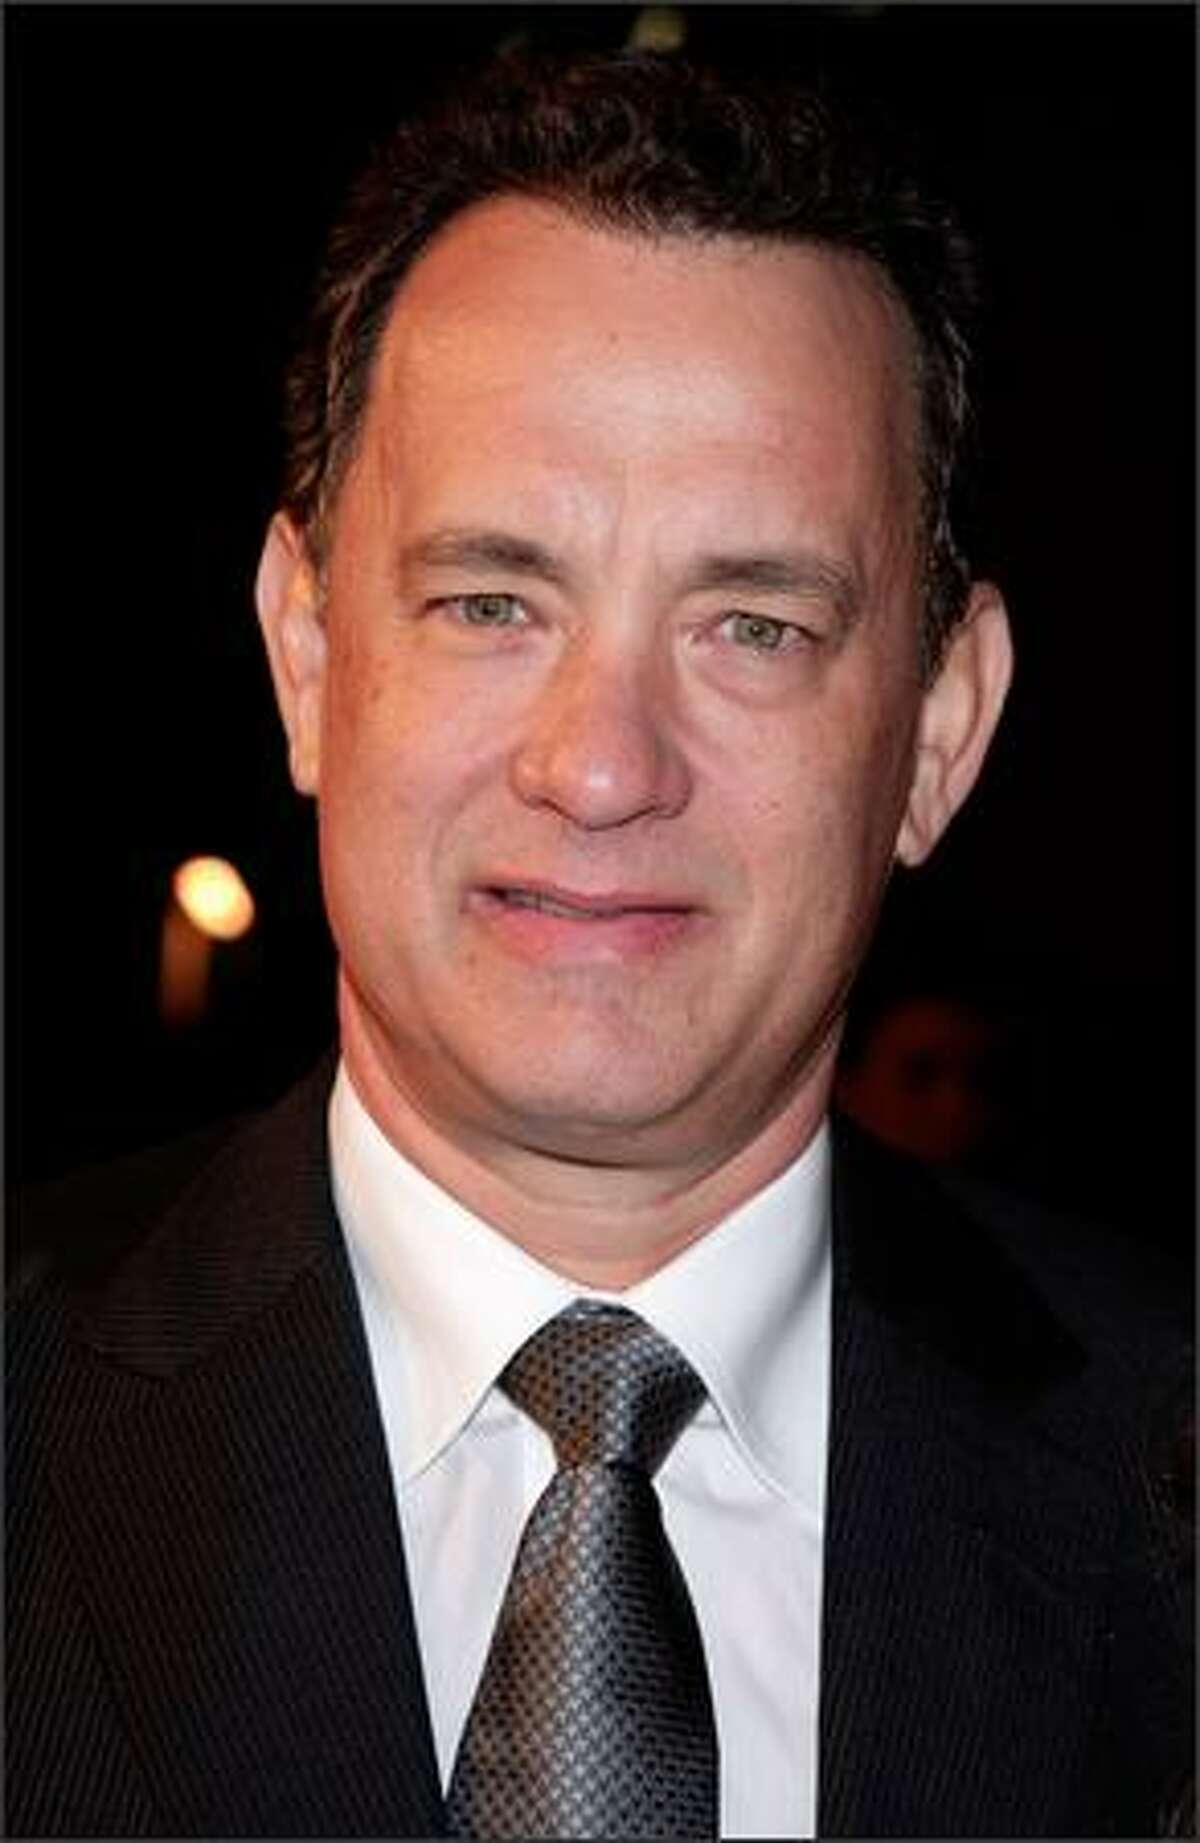 """Actor Tom Hanks arrives at the Universal Pictures' premiere of """"Charlie Wilson's War"""" held at CityWalk Cinemas on Monday in Los Angeles, Calif."""